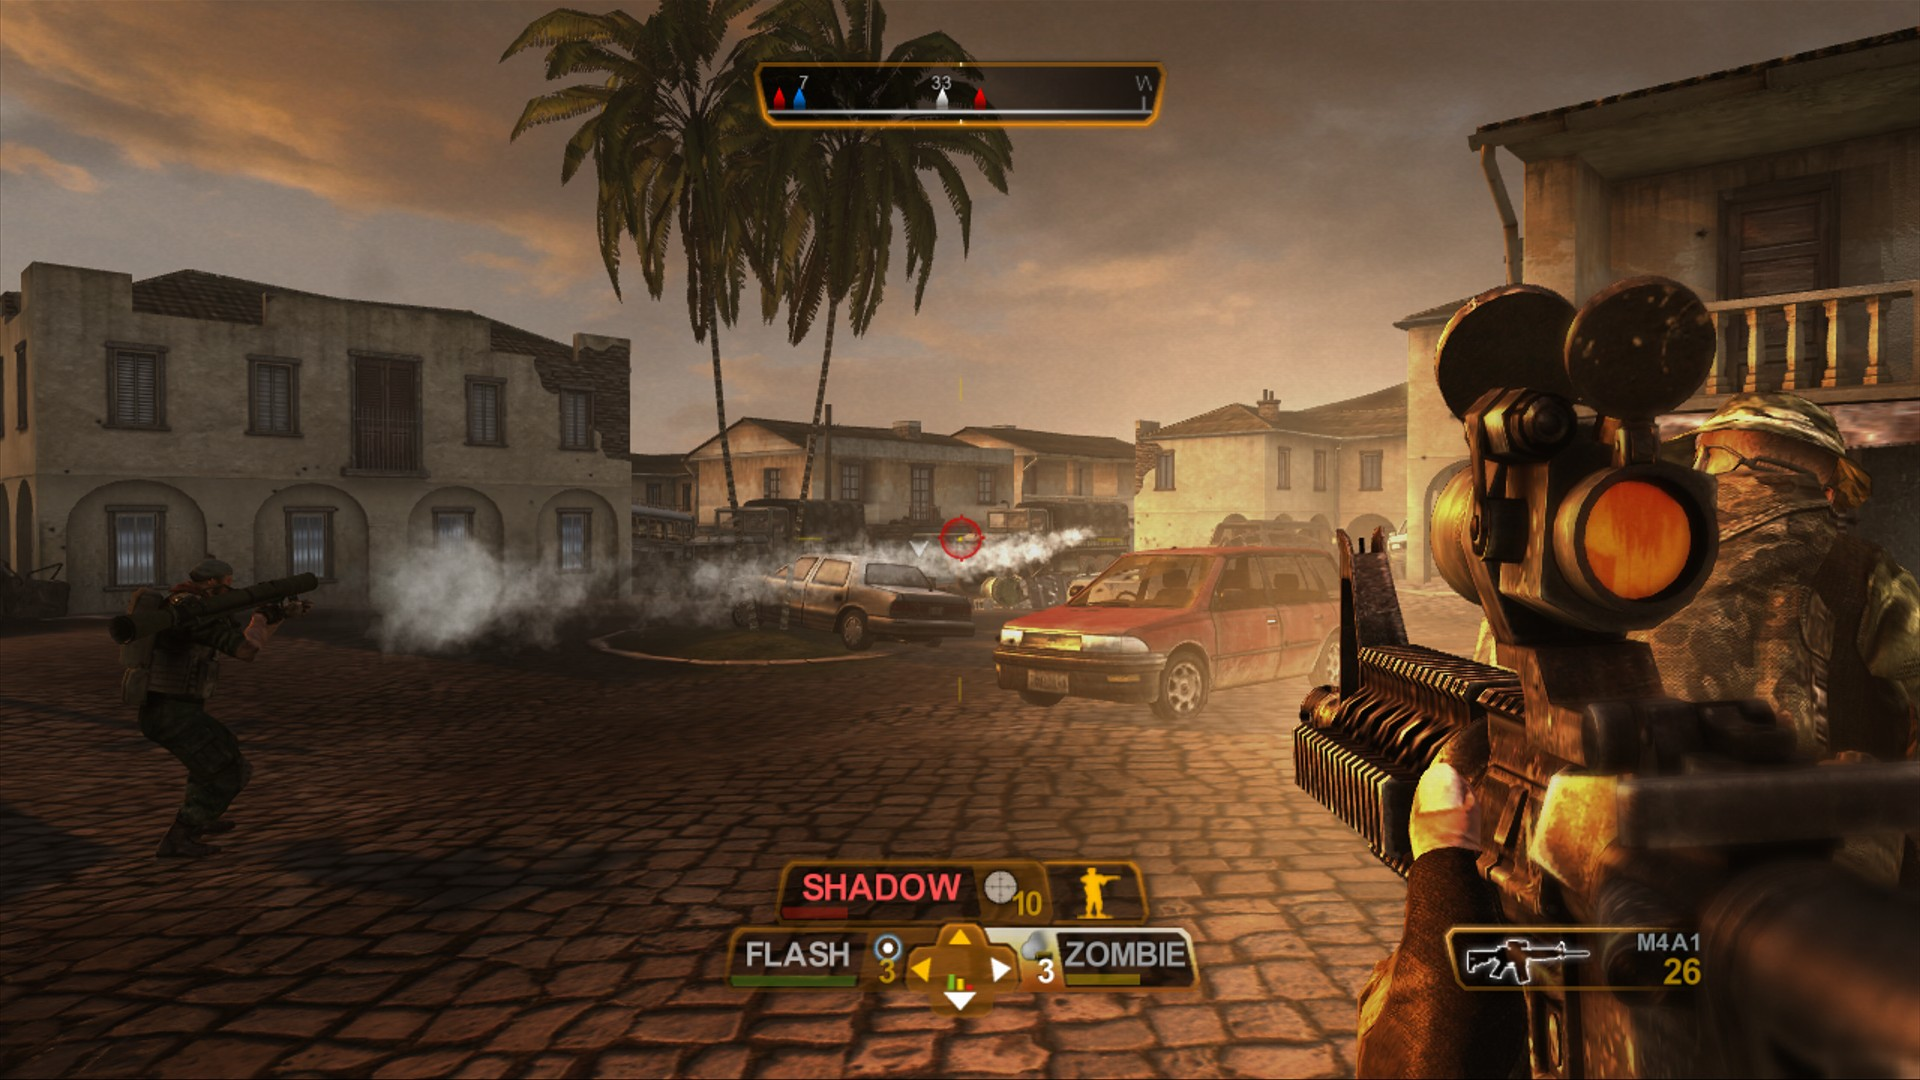 Shooting Games For Xbox 360 : Top rated first person shooter games xbox veryletitbit